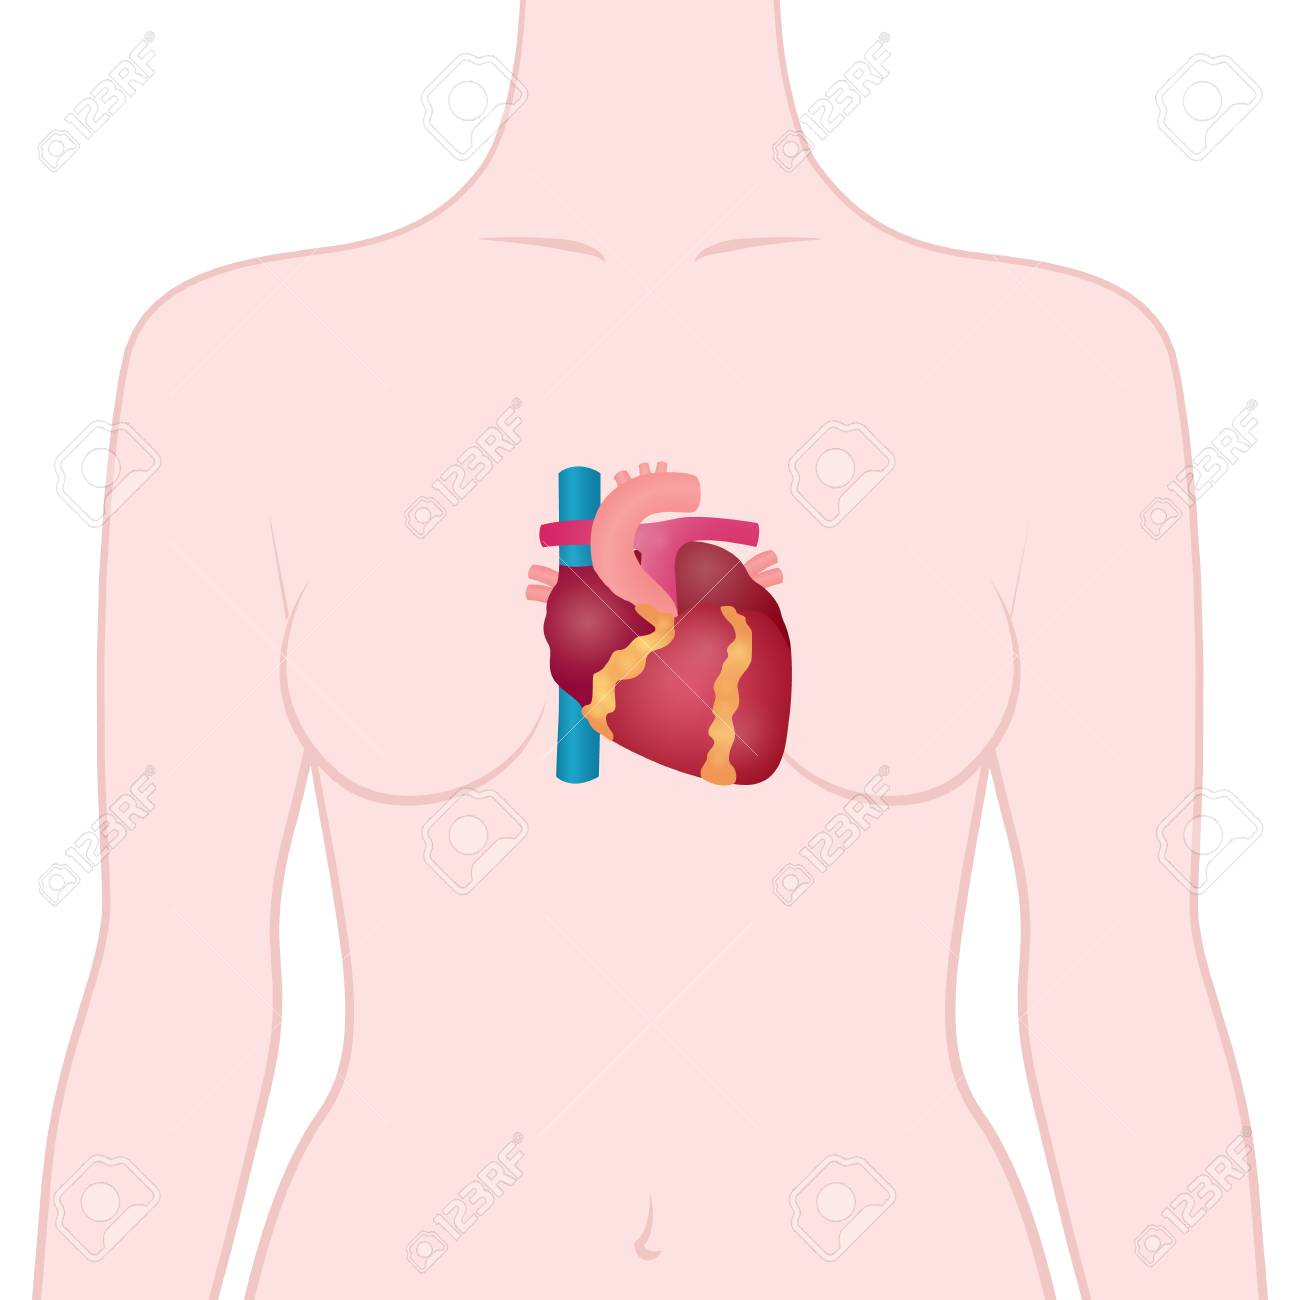 Anatomy Of The Human Heart The Location Of The Heart In The